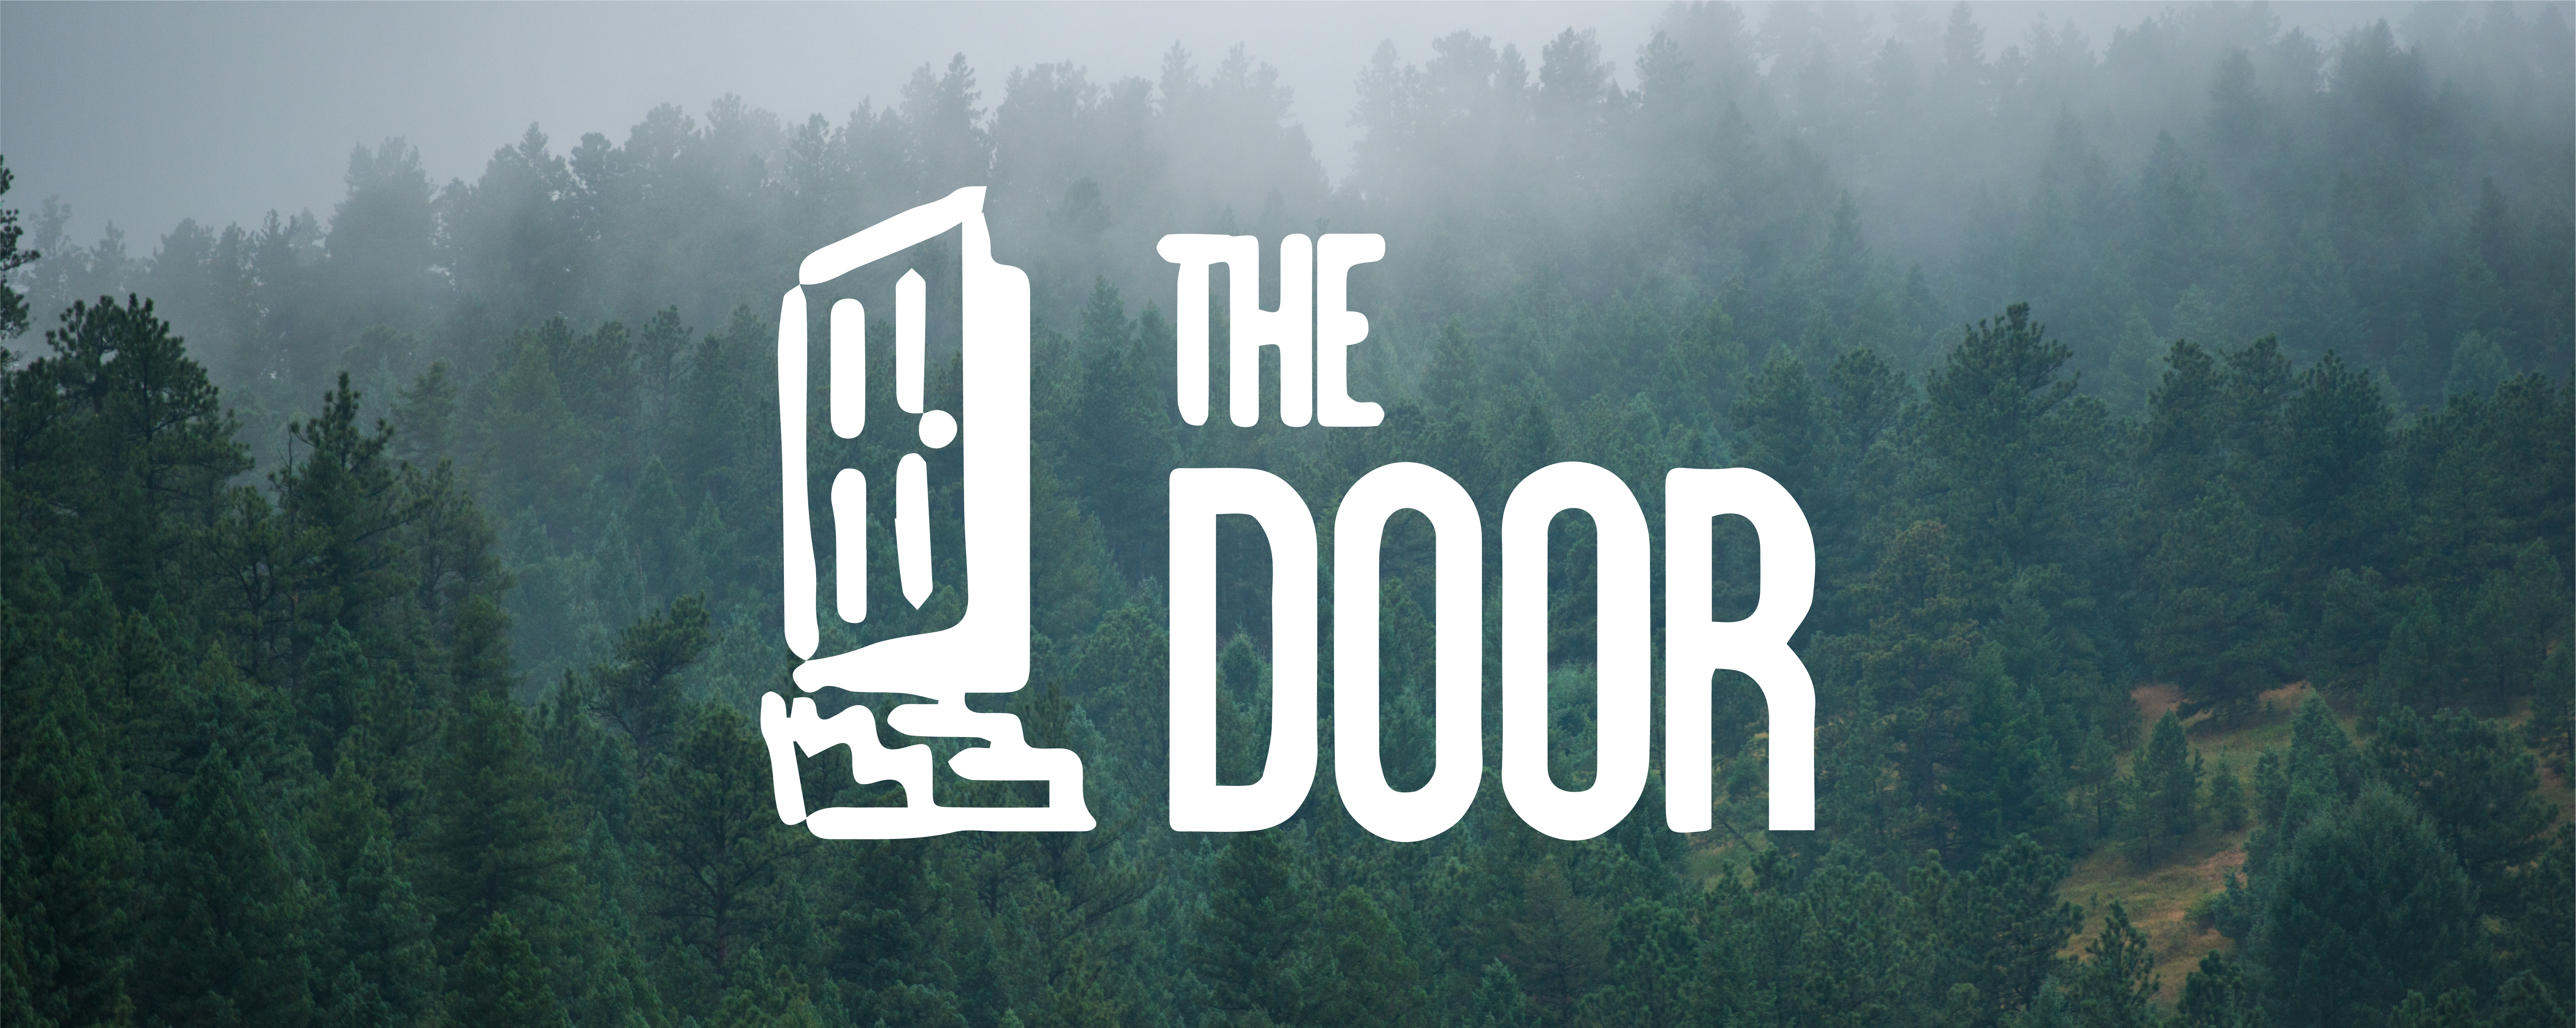 The Door - 9 Nonprofits With the Ultimate Mission Mindsets | Botkeeper